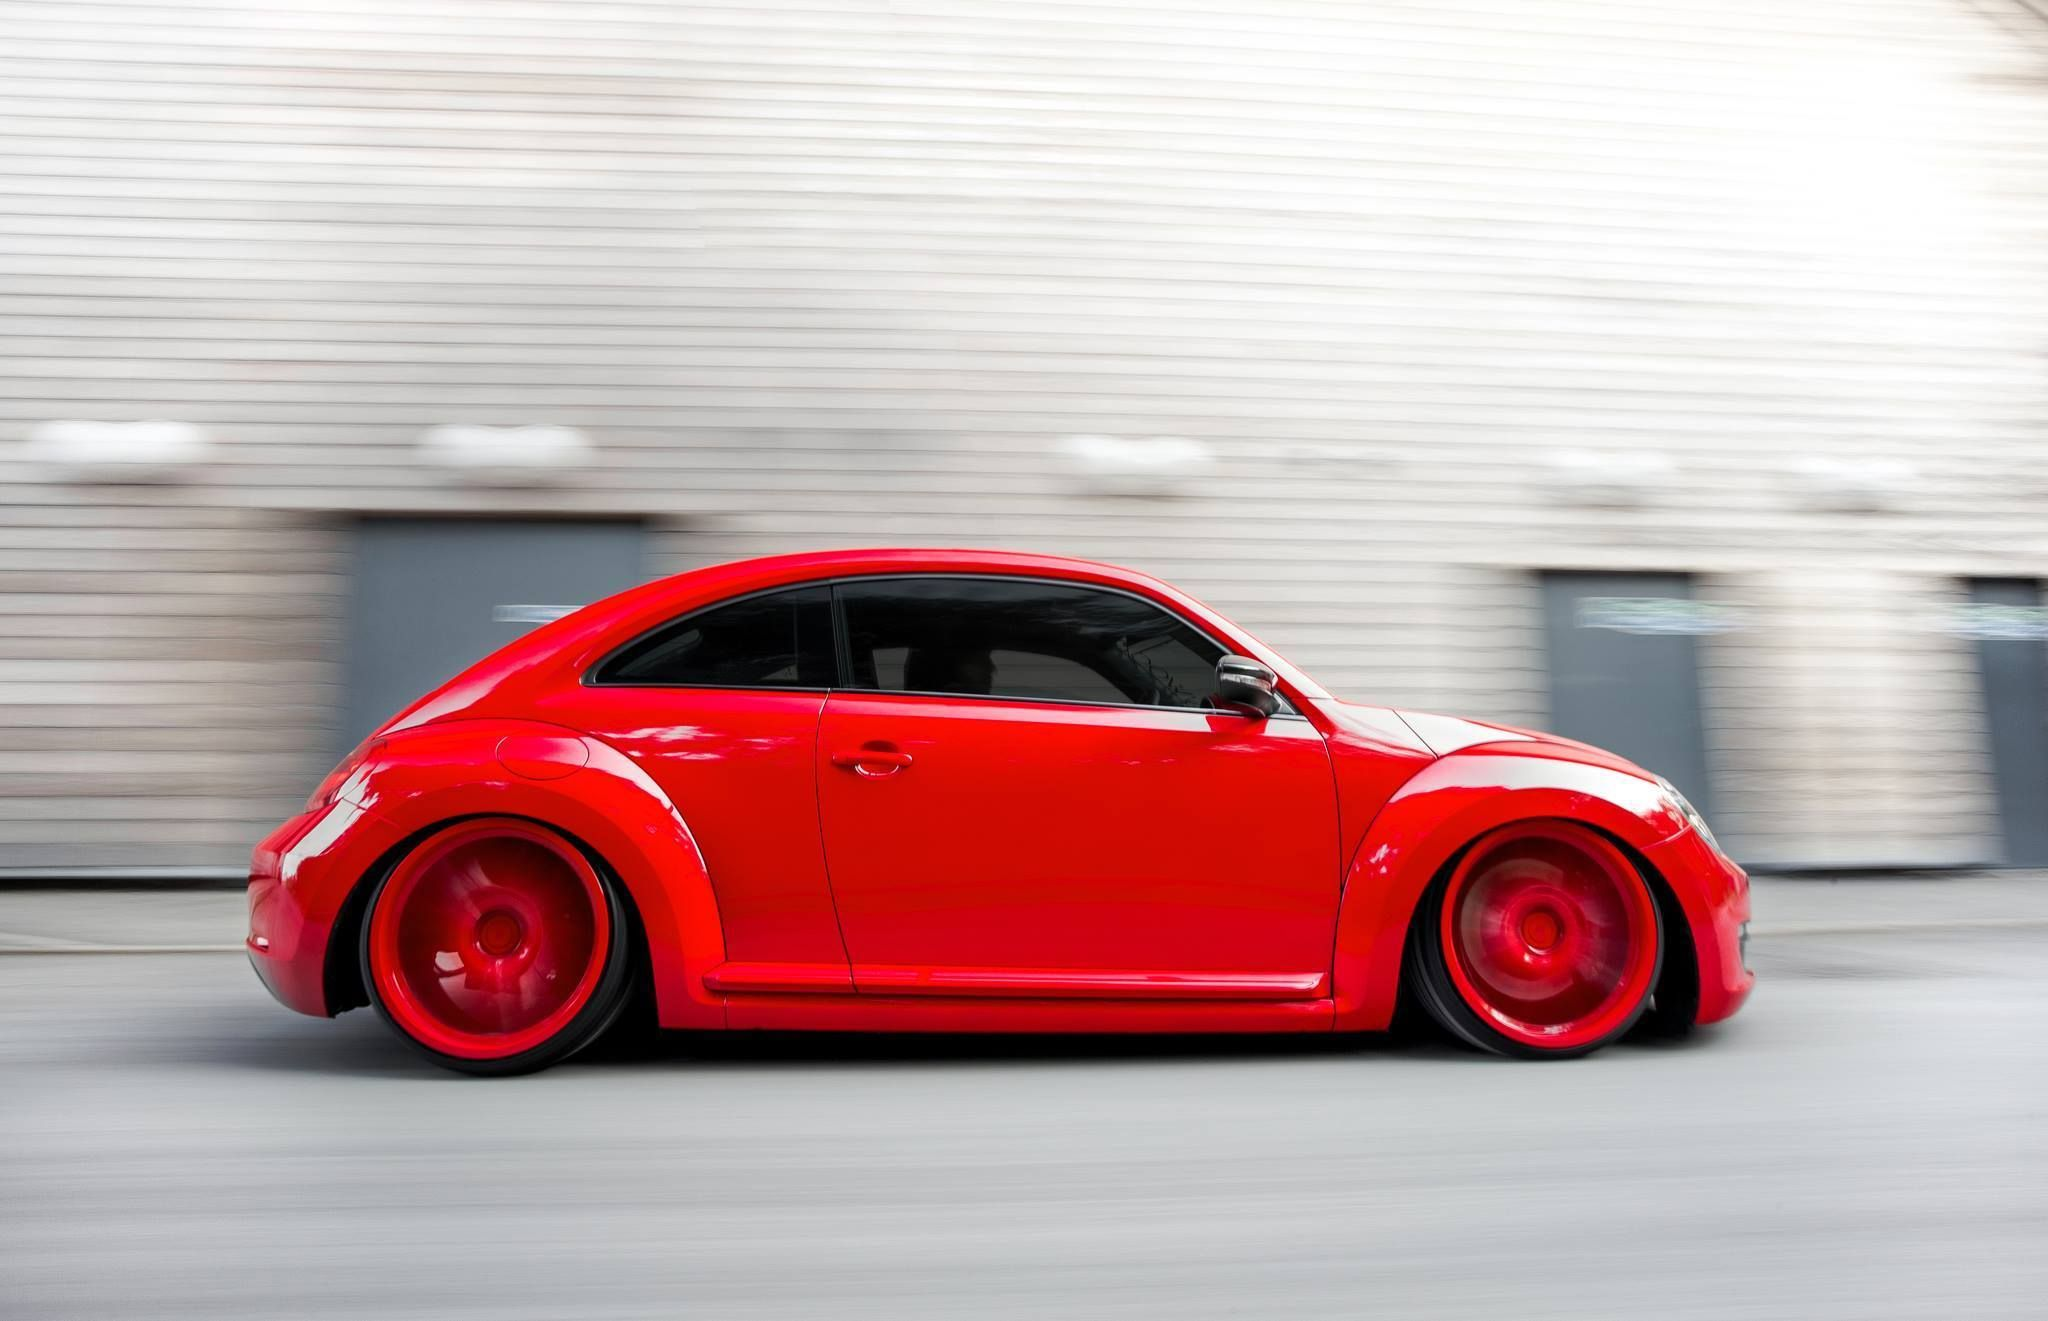 Design of beetle car - Vw Red New Beetle With Red Wheels